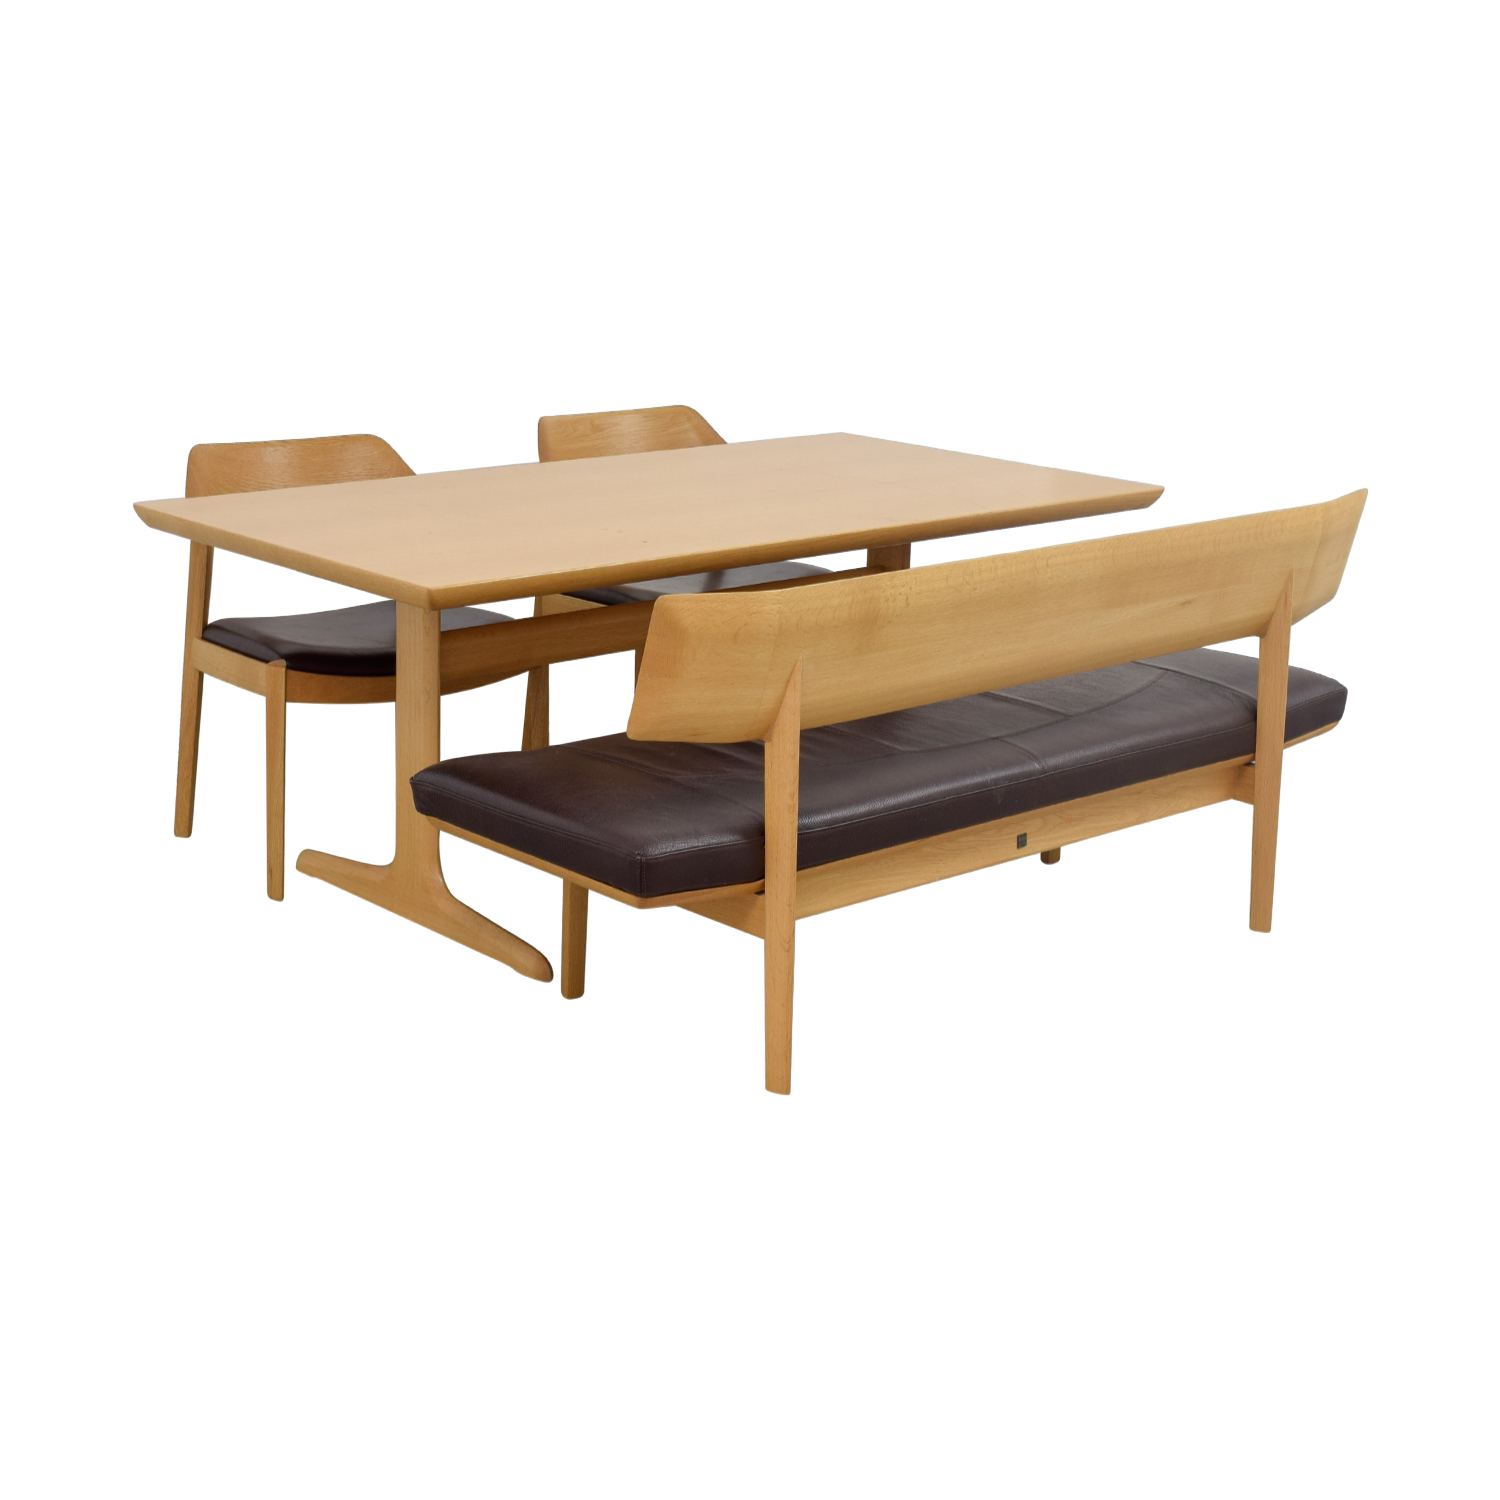 Conde House Conde House Wood Dining Set with Chairs and Bench dimensions